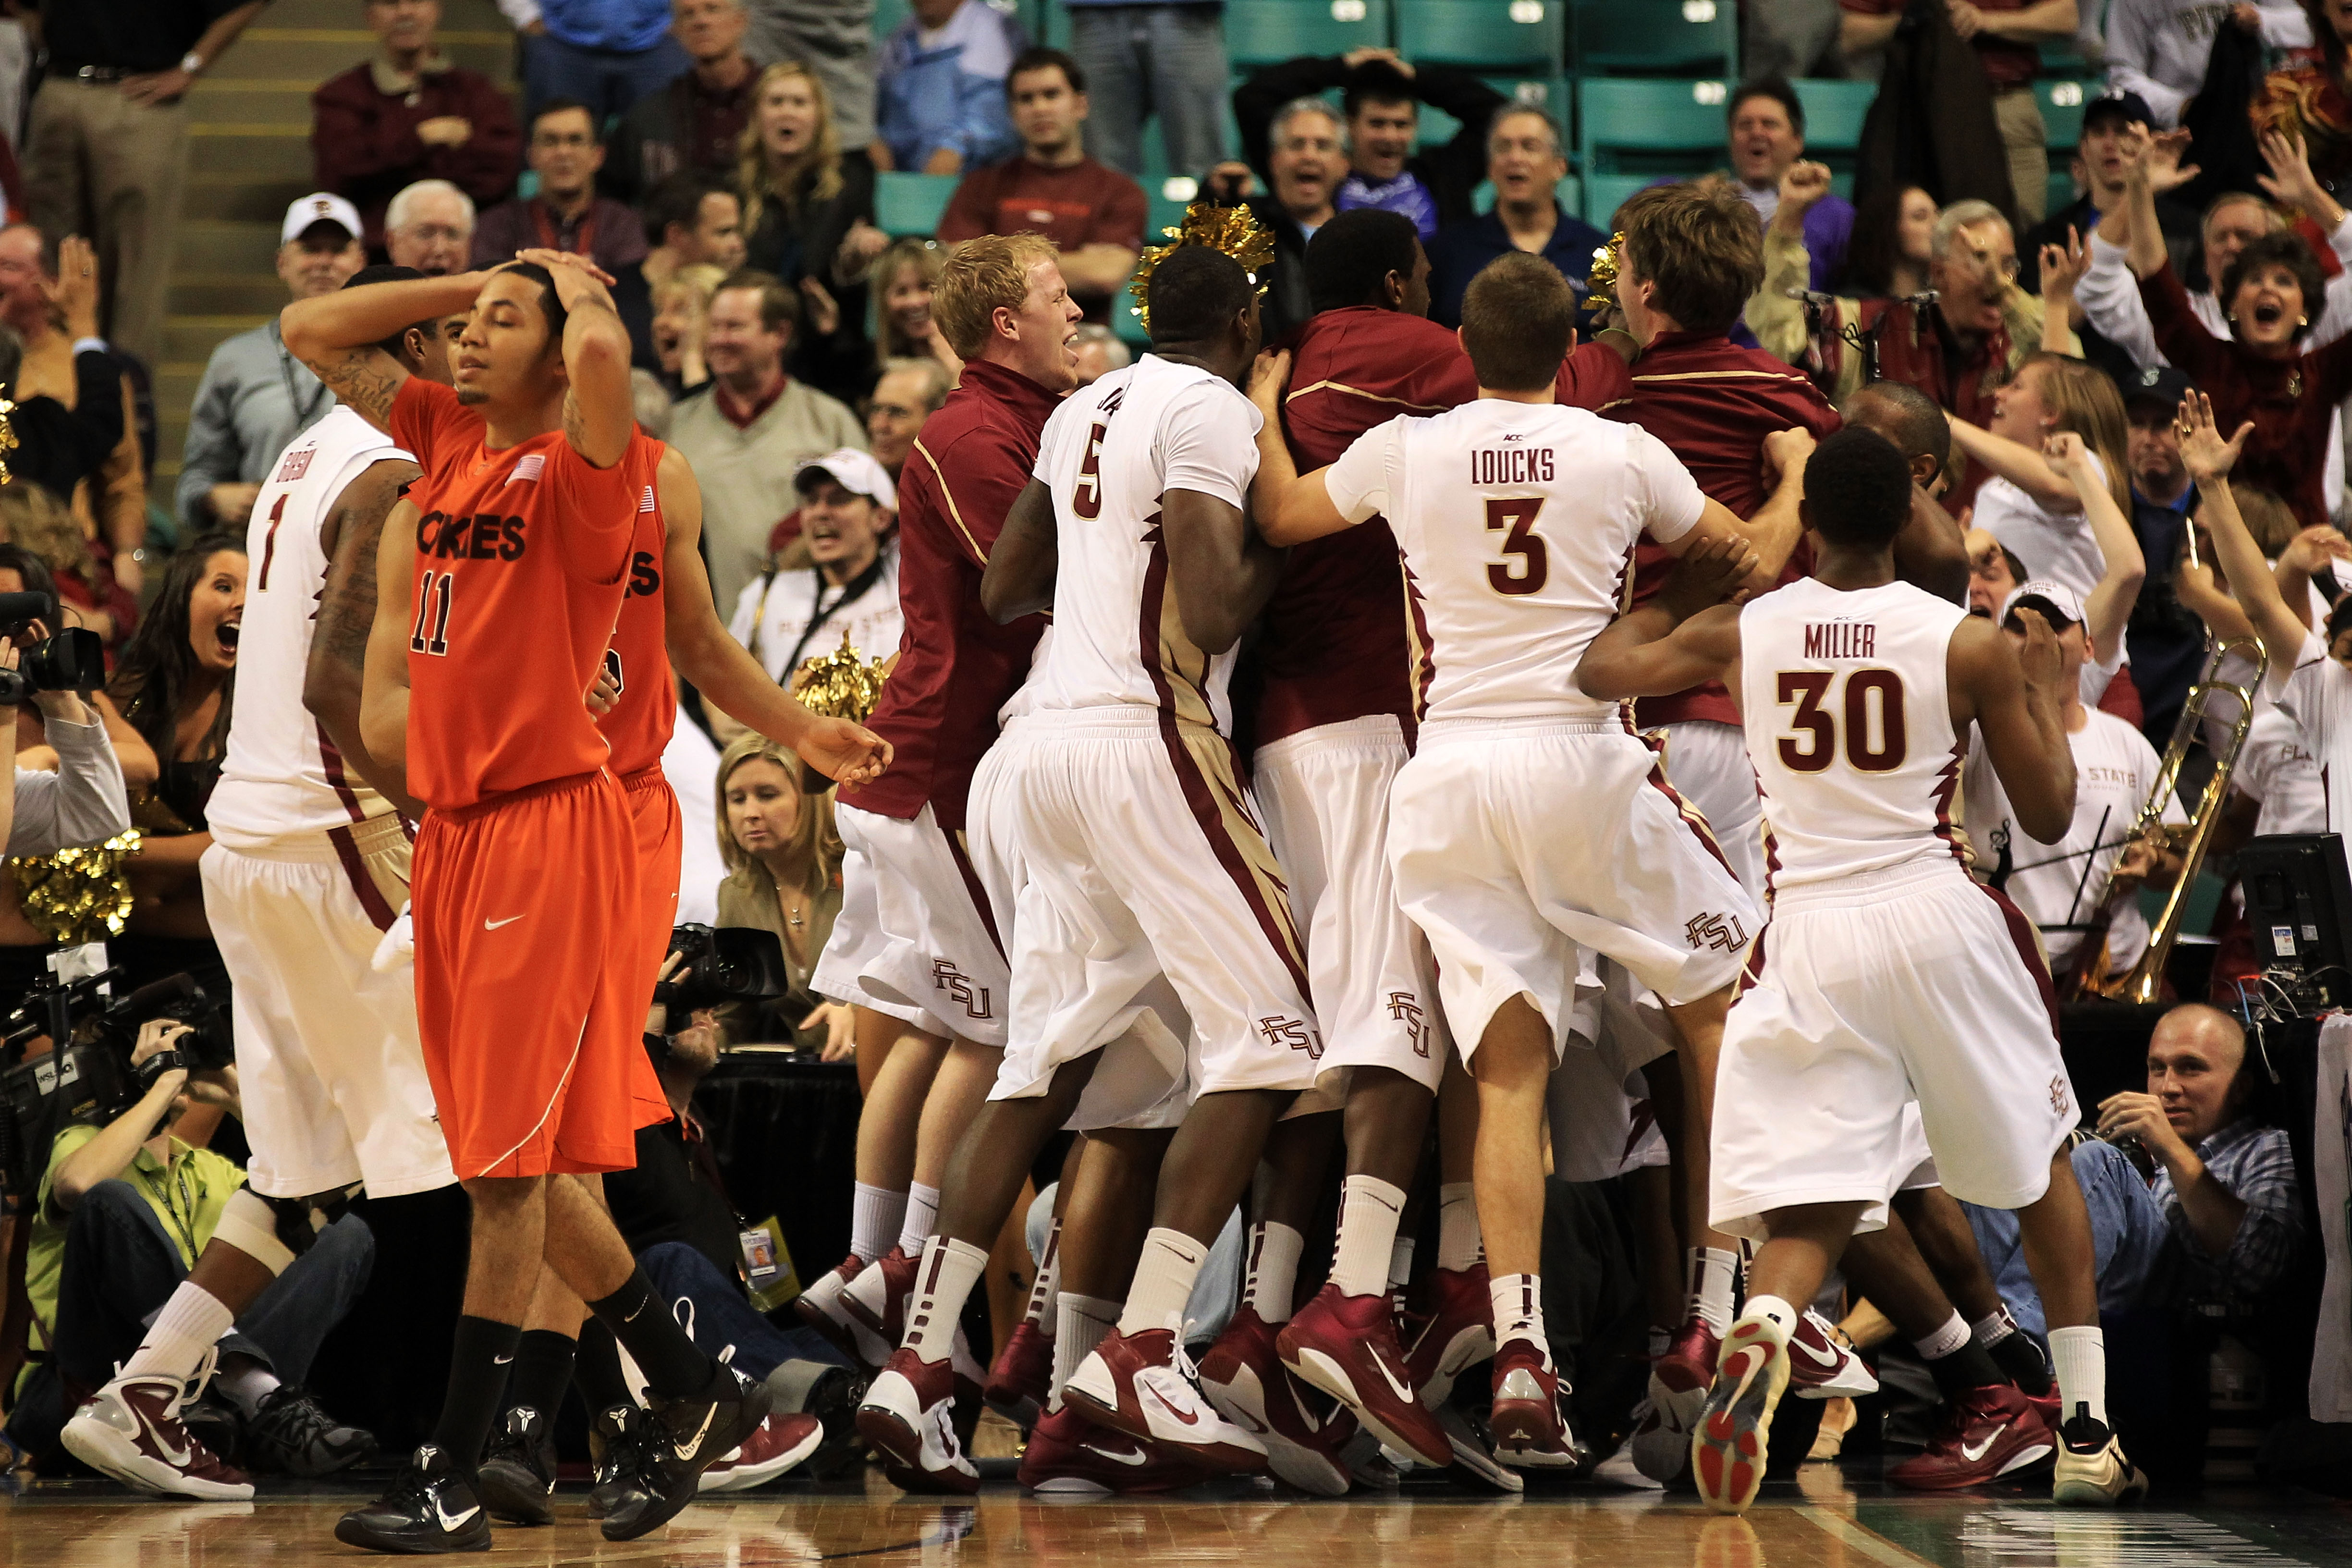 GREENSBORO, NC - MARCH 11:  Erick Green #11 of the Virginia Tech Hokies reacts to a shot at the buzzer by Derwin Kitchen #22 of the Florida State Seminoles as the Seminoles celebrate what would have been a victory for them during the quarterfinals of the